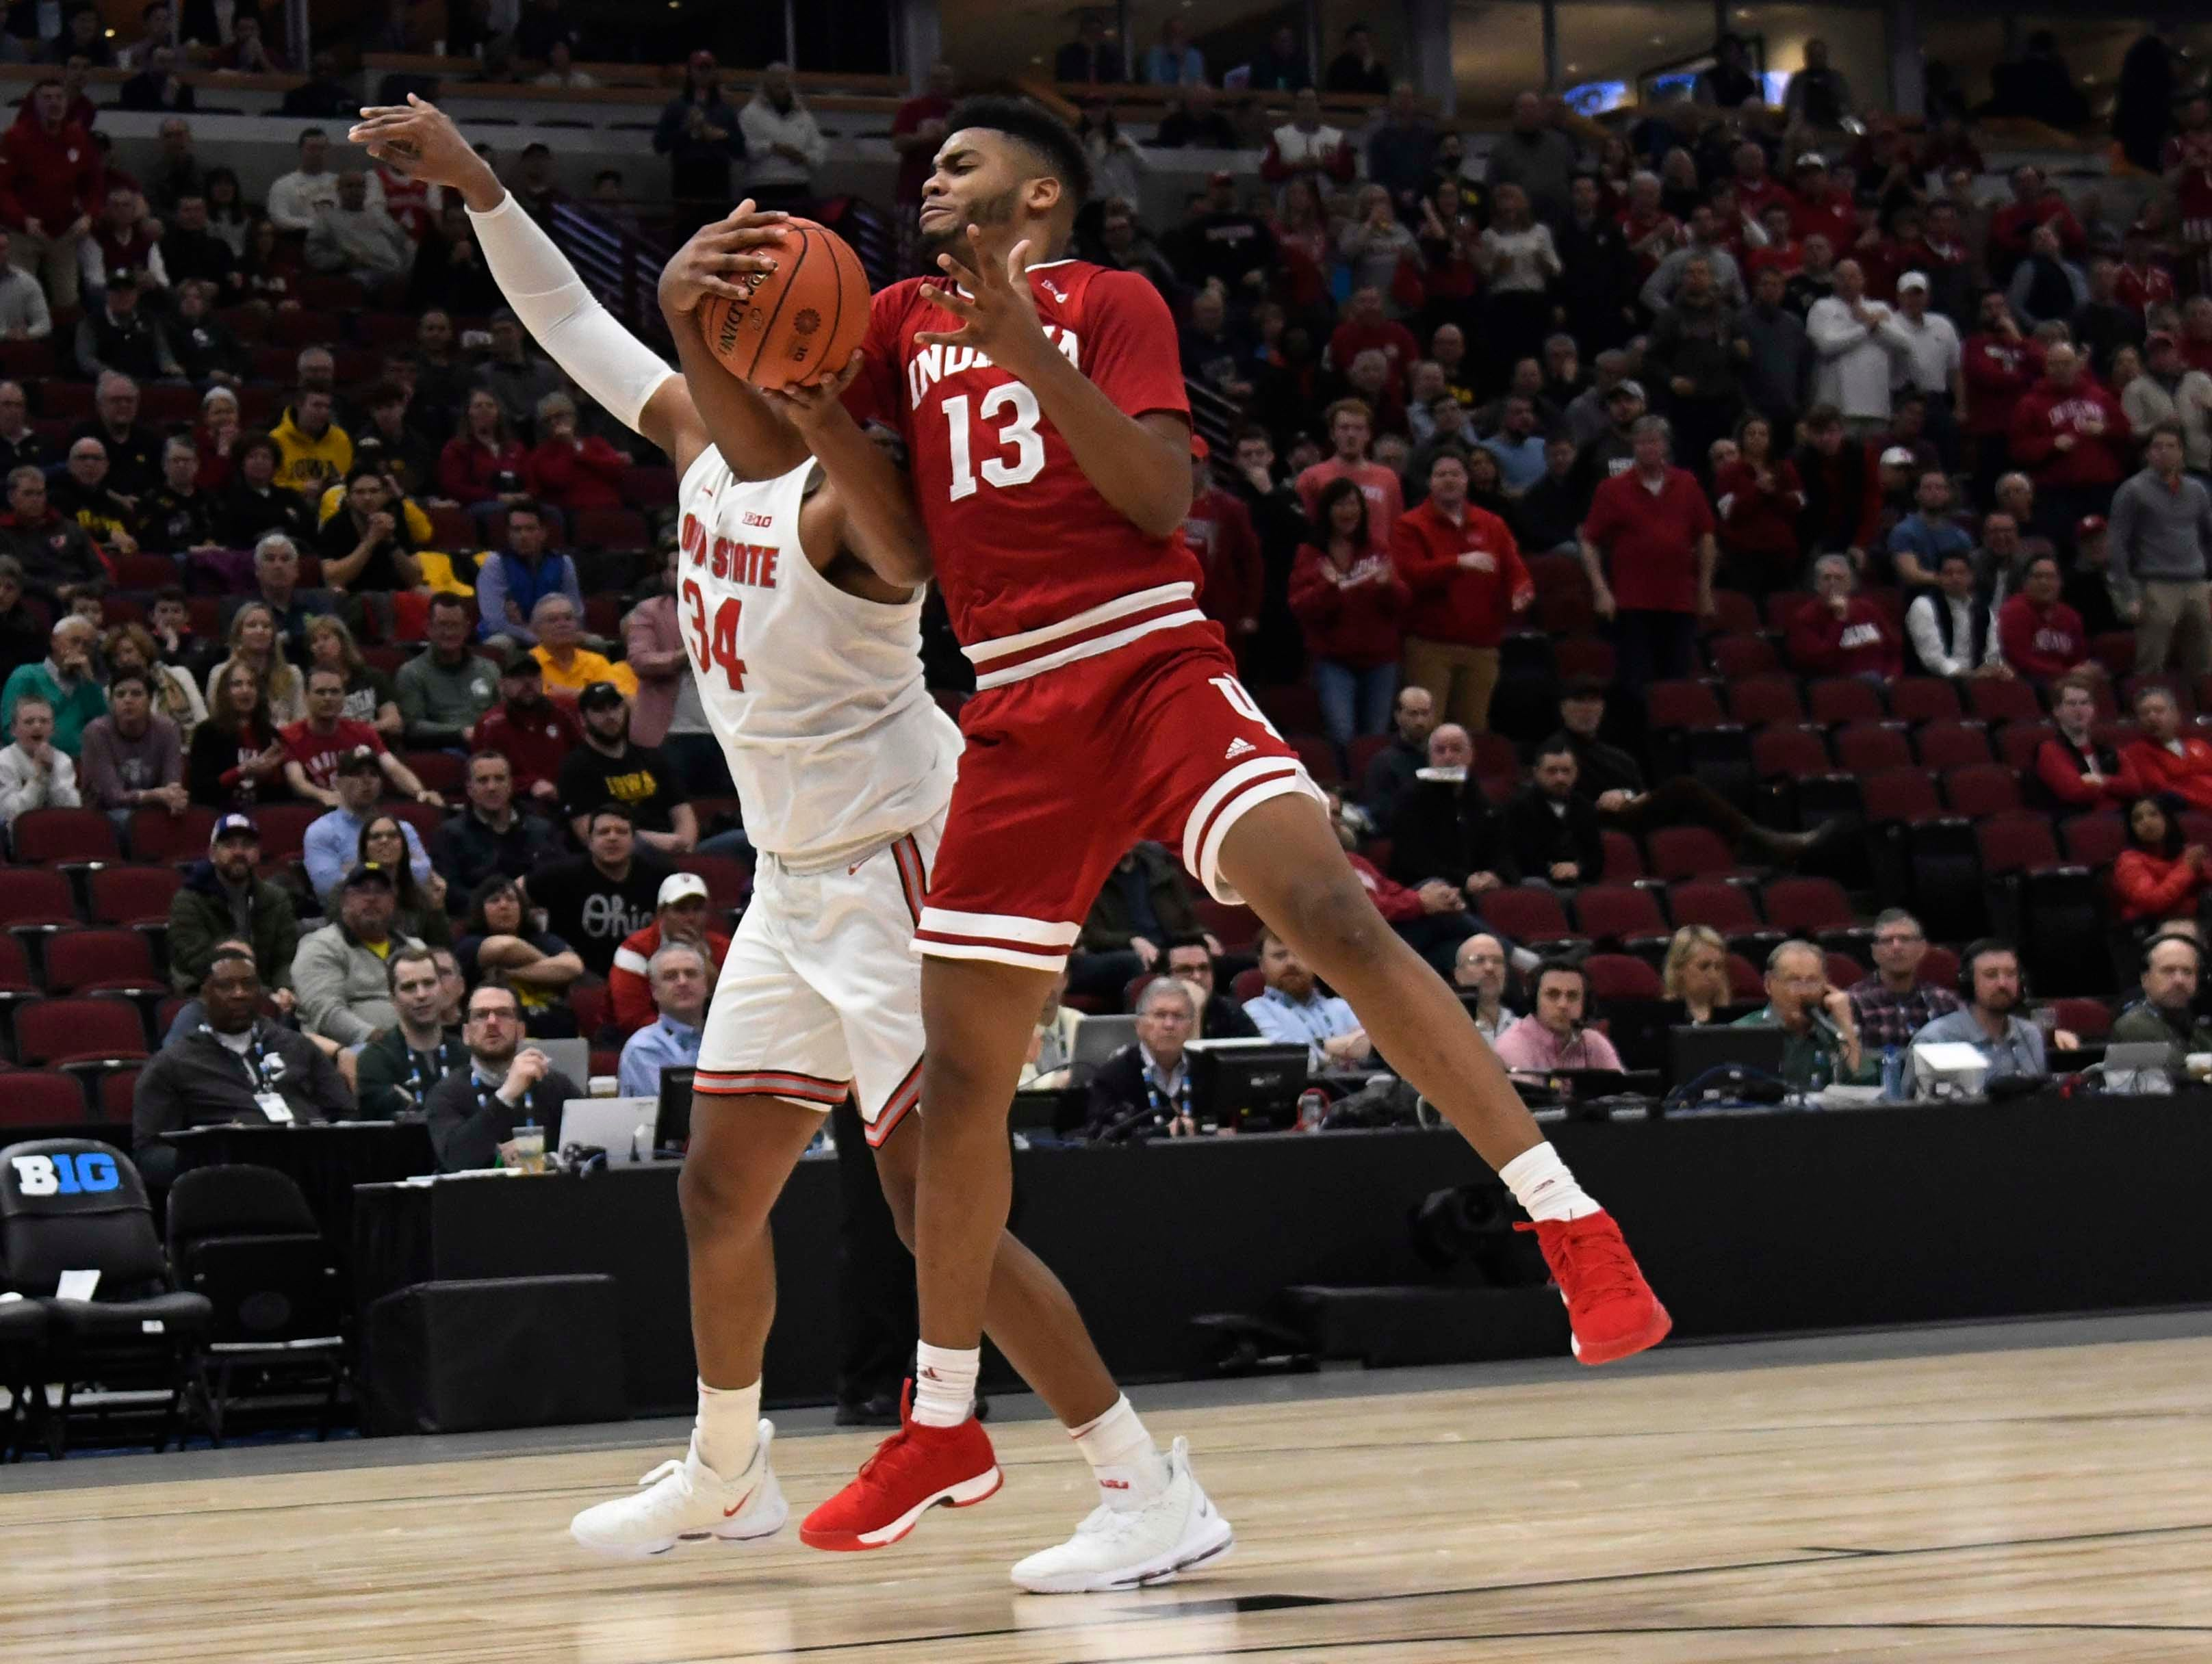 Mar 14, 2019; Chicago, IL, USA; Indiana Hoosiers forward Juwan Morgan (13) and Ohio State Buckeyes forward Kaleb Wesson (34) go for a rebound during the first half in the Big Ten conference tournament at United Center. Mandatory Credit: David Banks-USA TODAY Sports